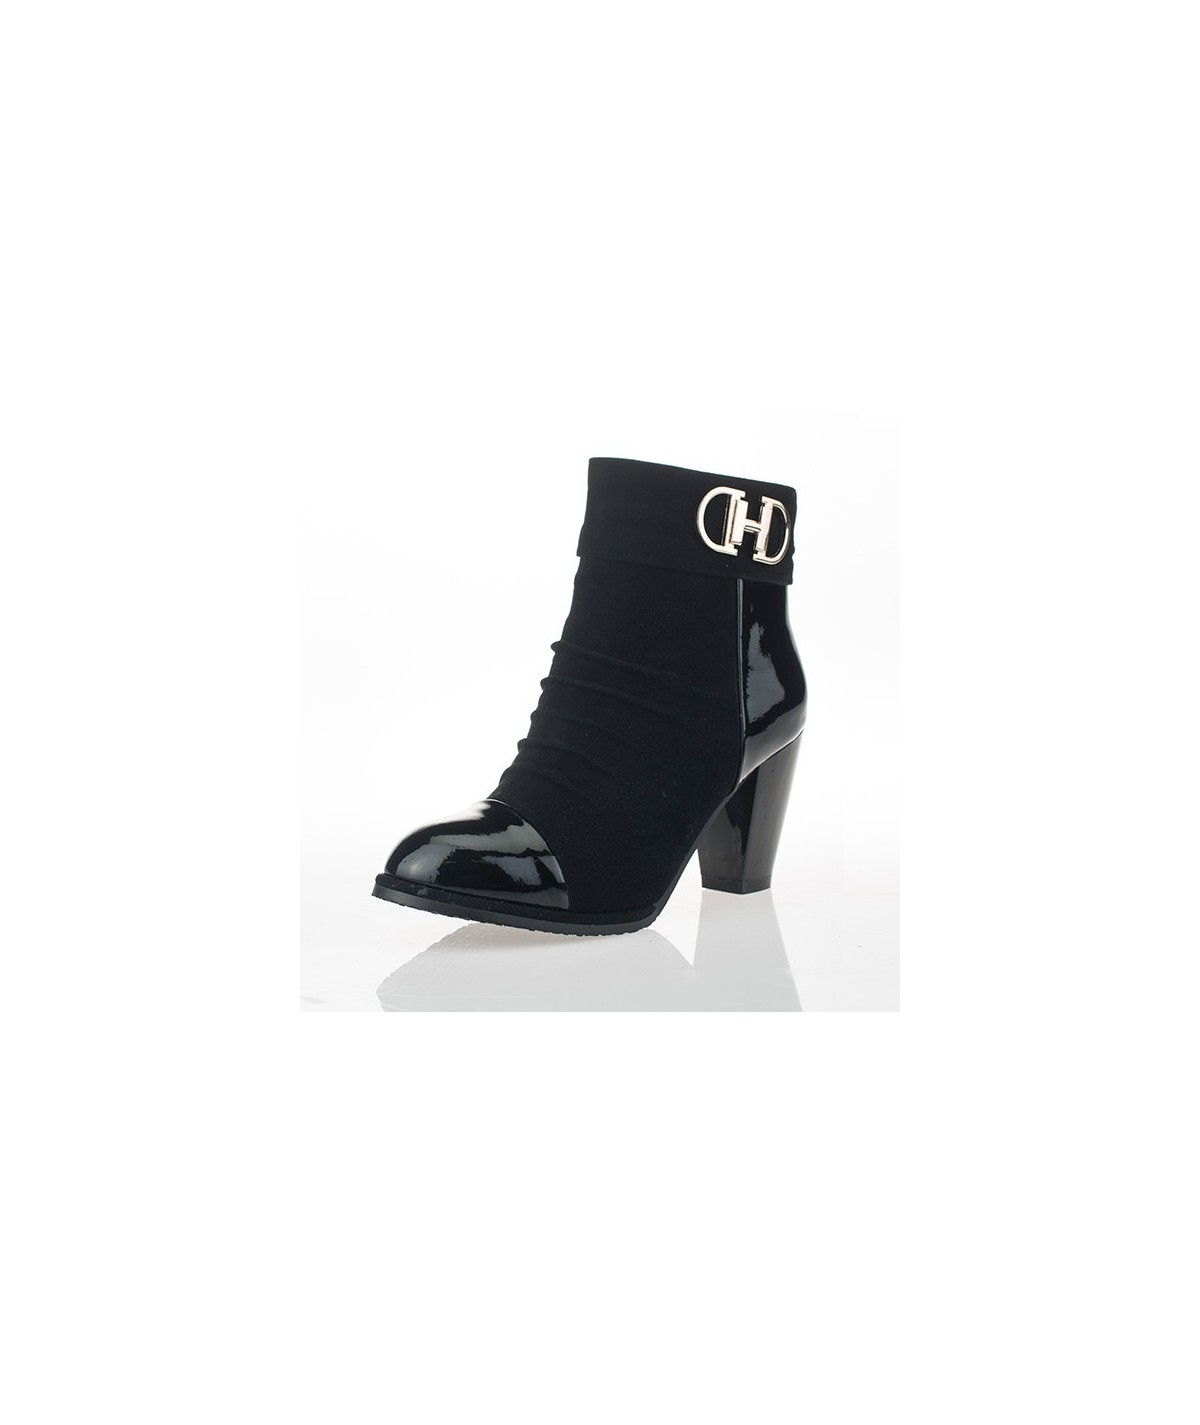 Black Ankle Boots for Petites - Chloe